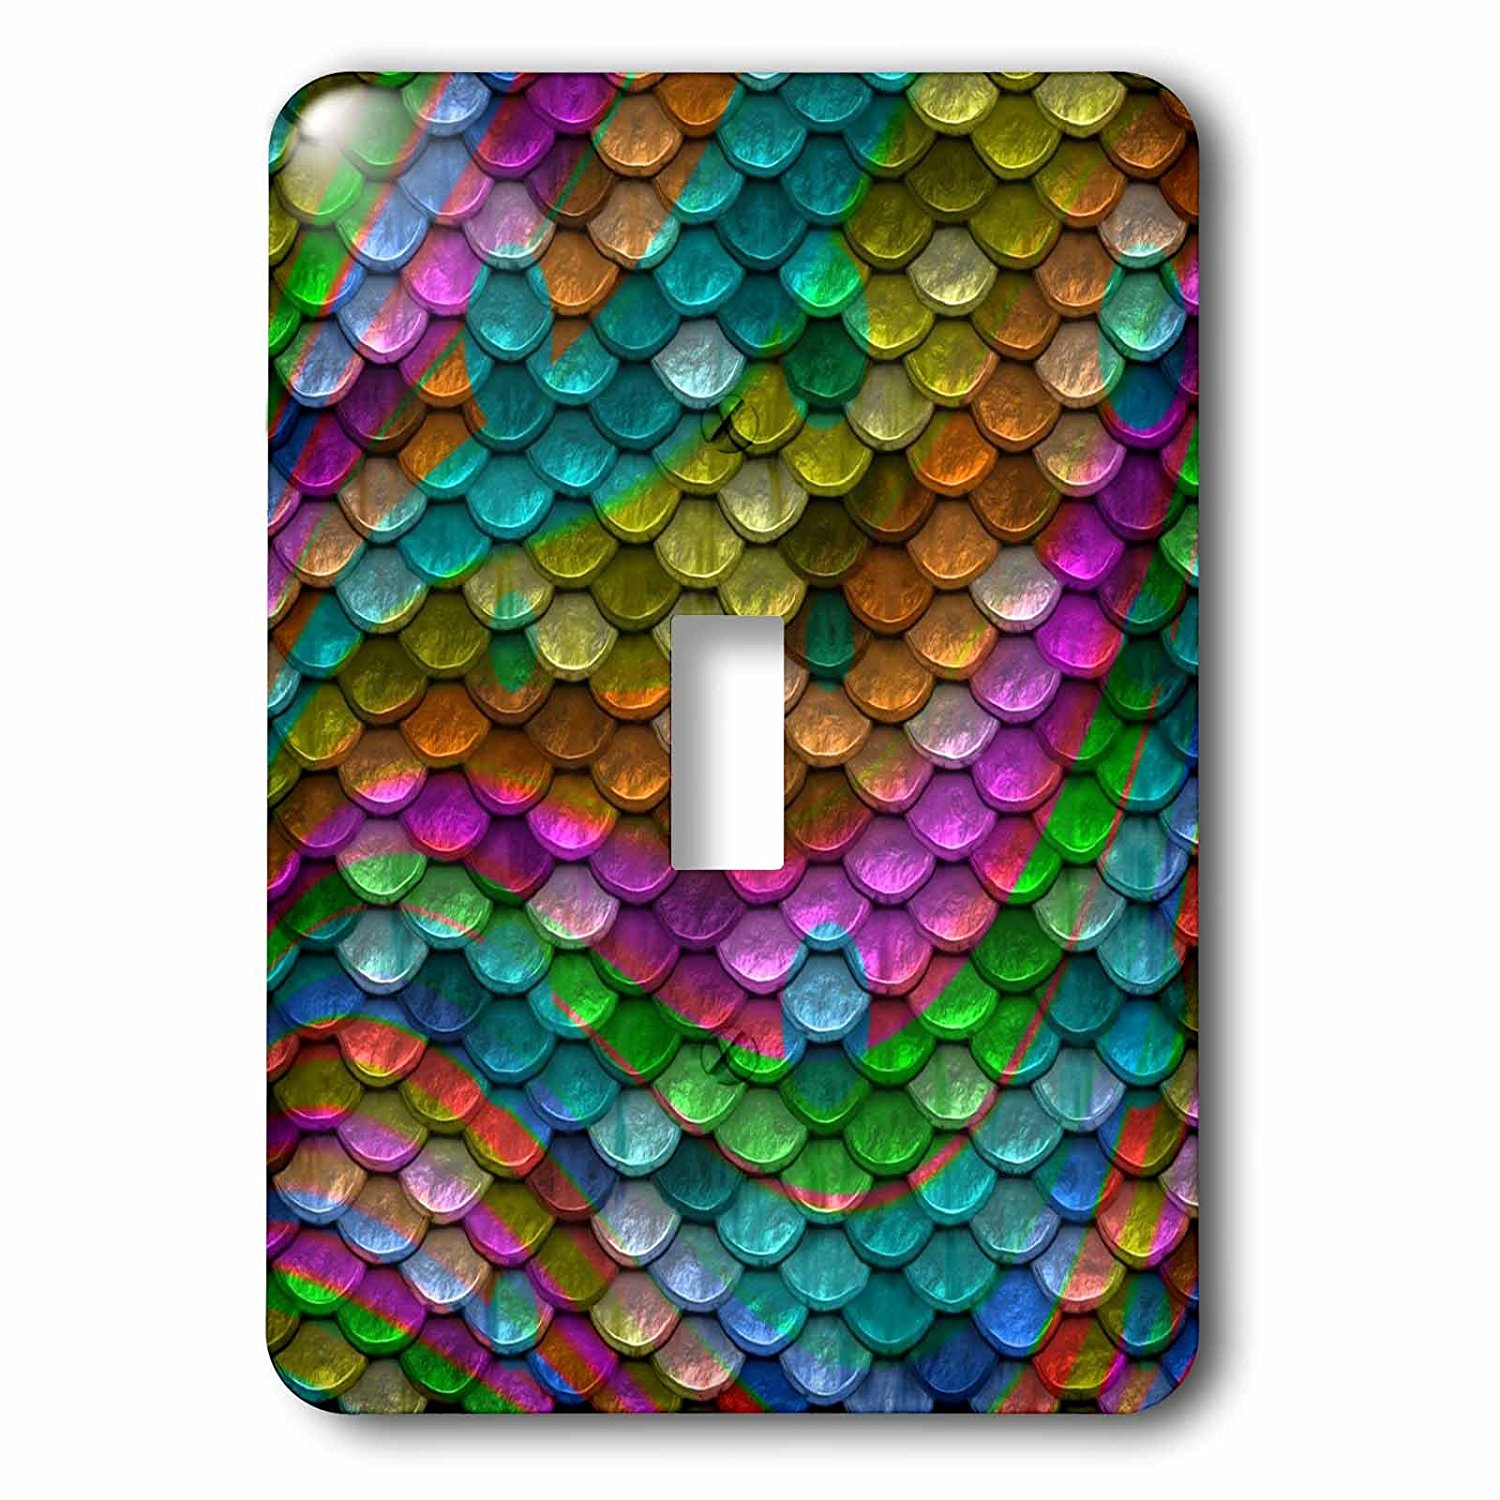 3dRose Mermaid - Image of Mermaid Scales In Multicolor Shades - Light Switch Covers - single toggle switch (lsp_279971_1)